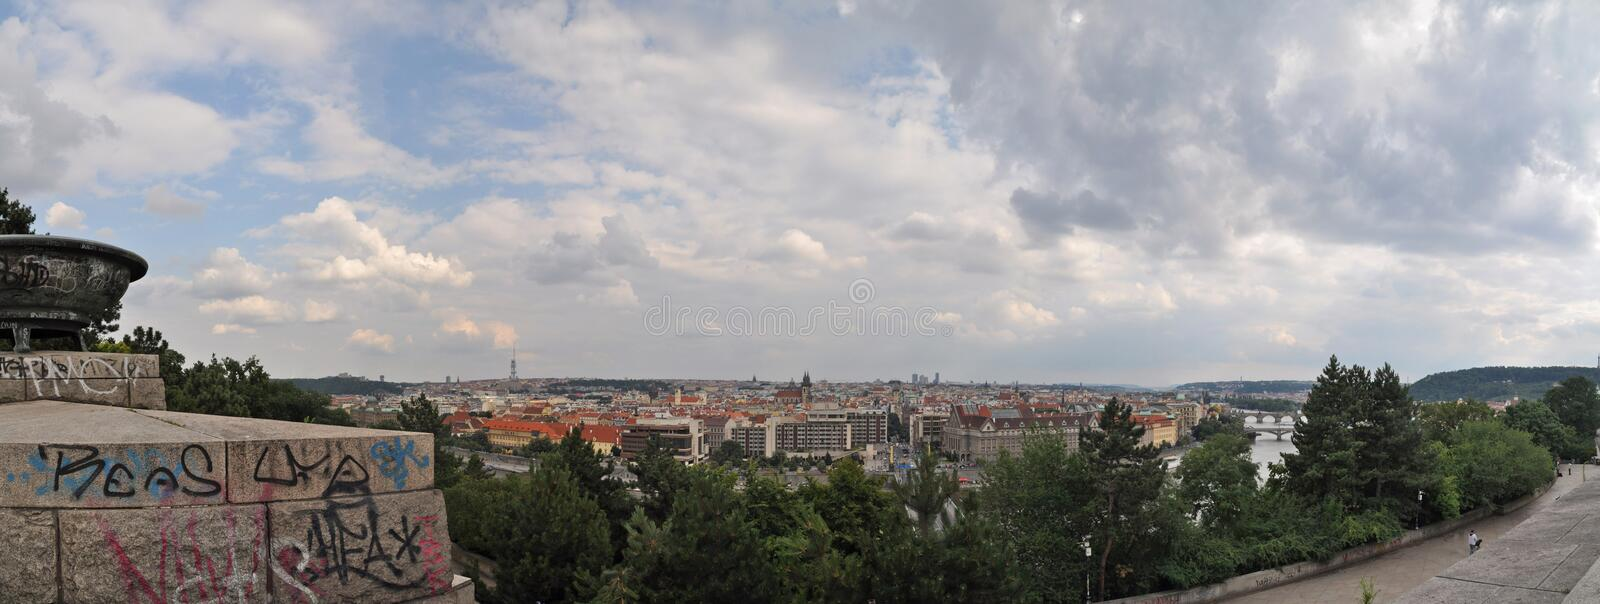 City panorama with graffiti and trees. Panorama of European city with buildings, trees, river and some graffiti royalty free stock photo